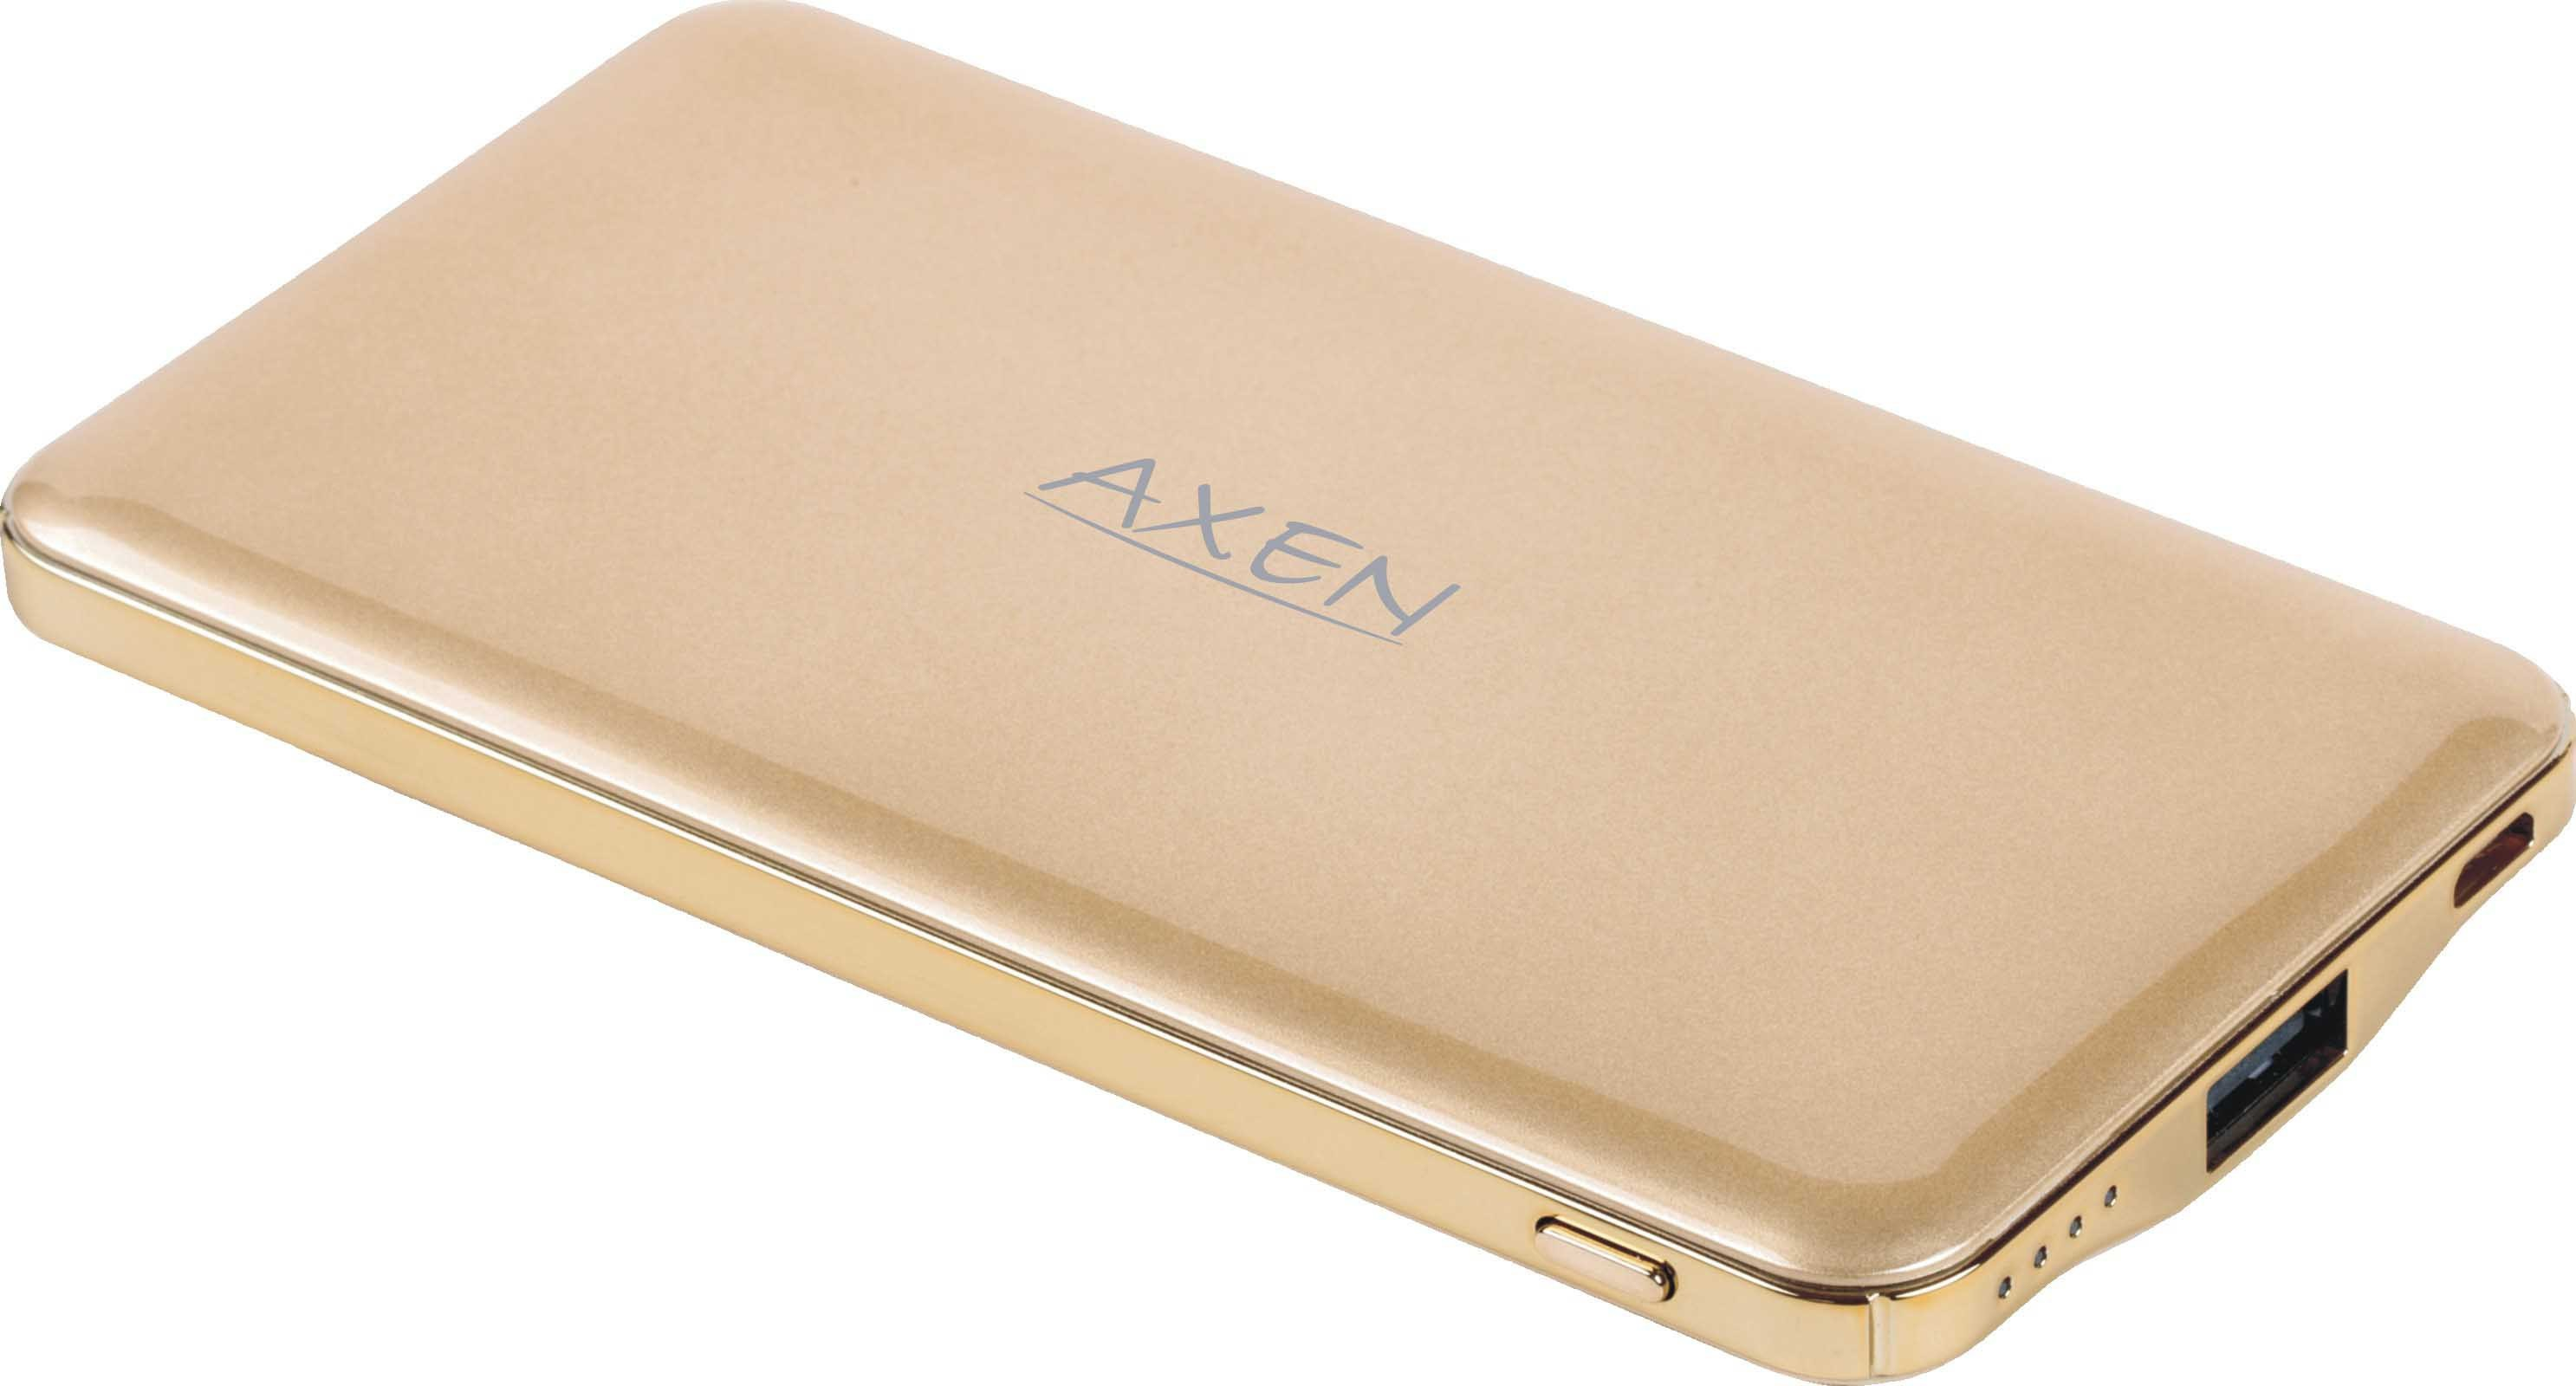 Axen 5000A Razor 5000 mAh Power Bank(Gold, Lithium Polymer)